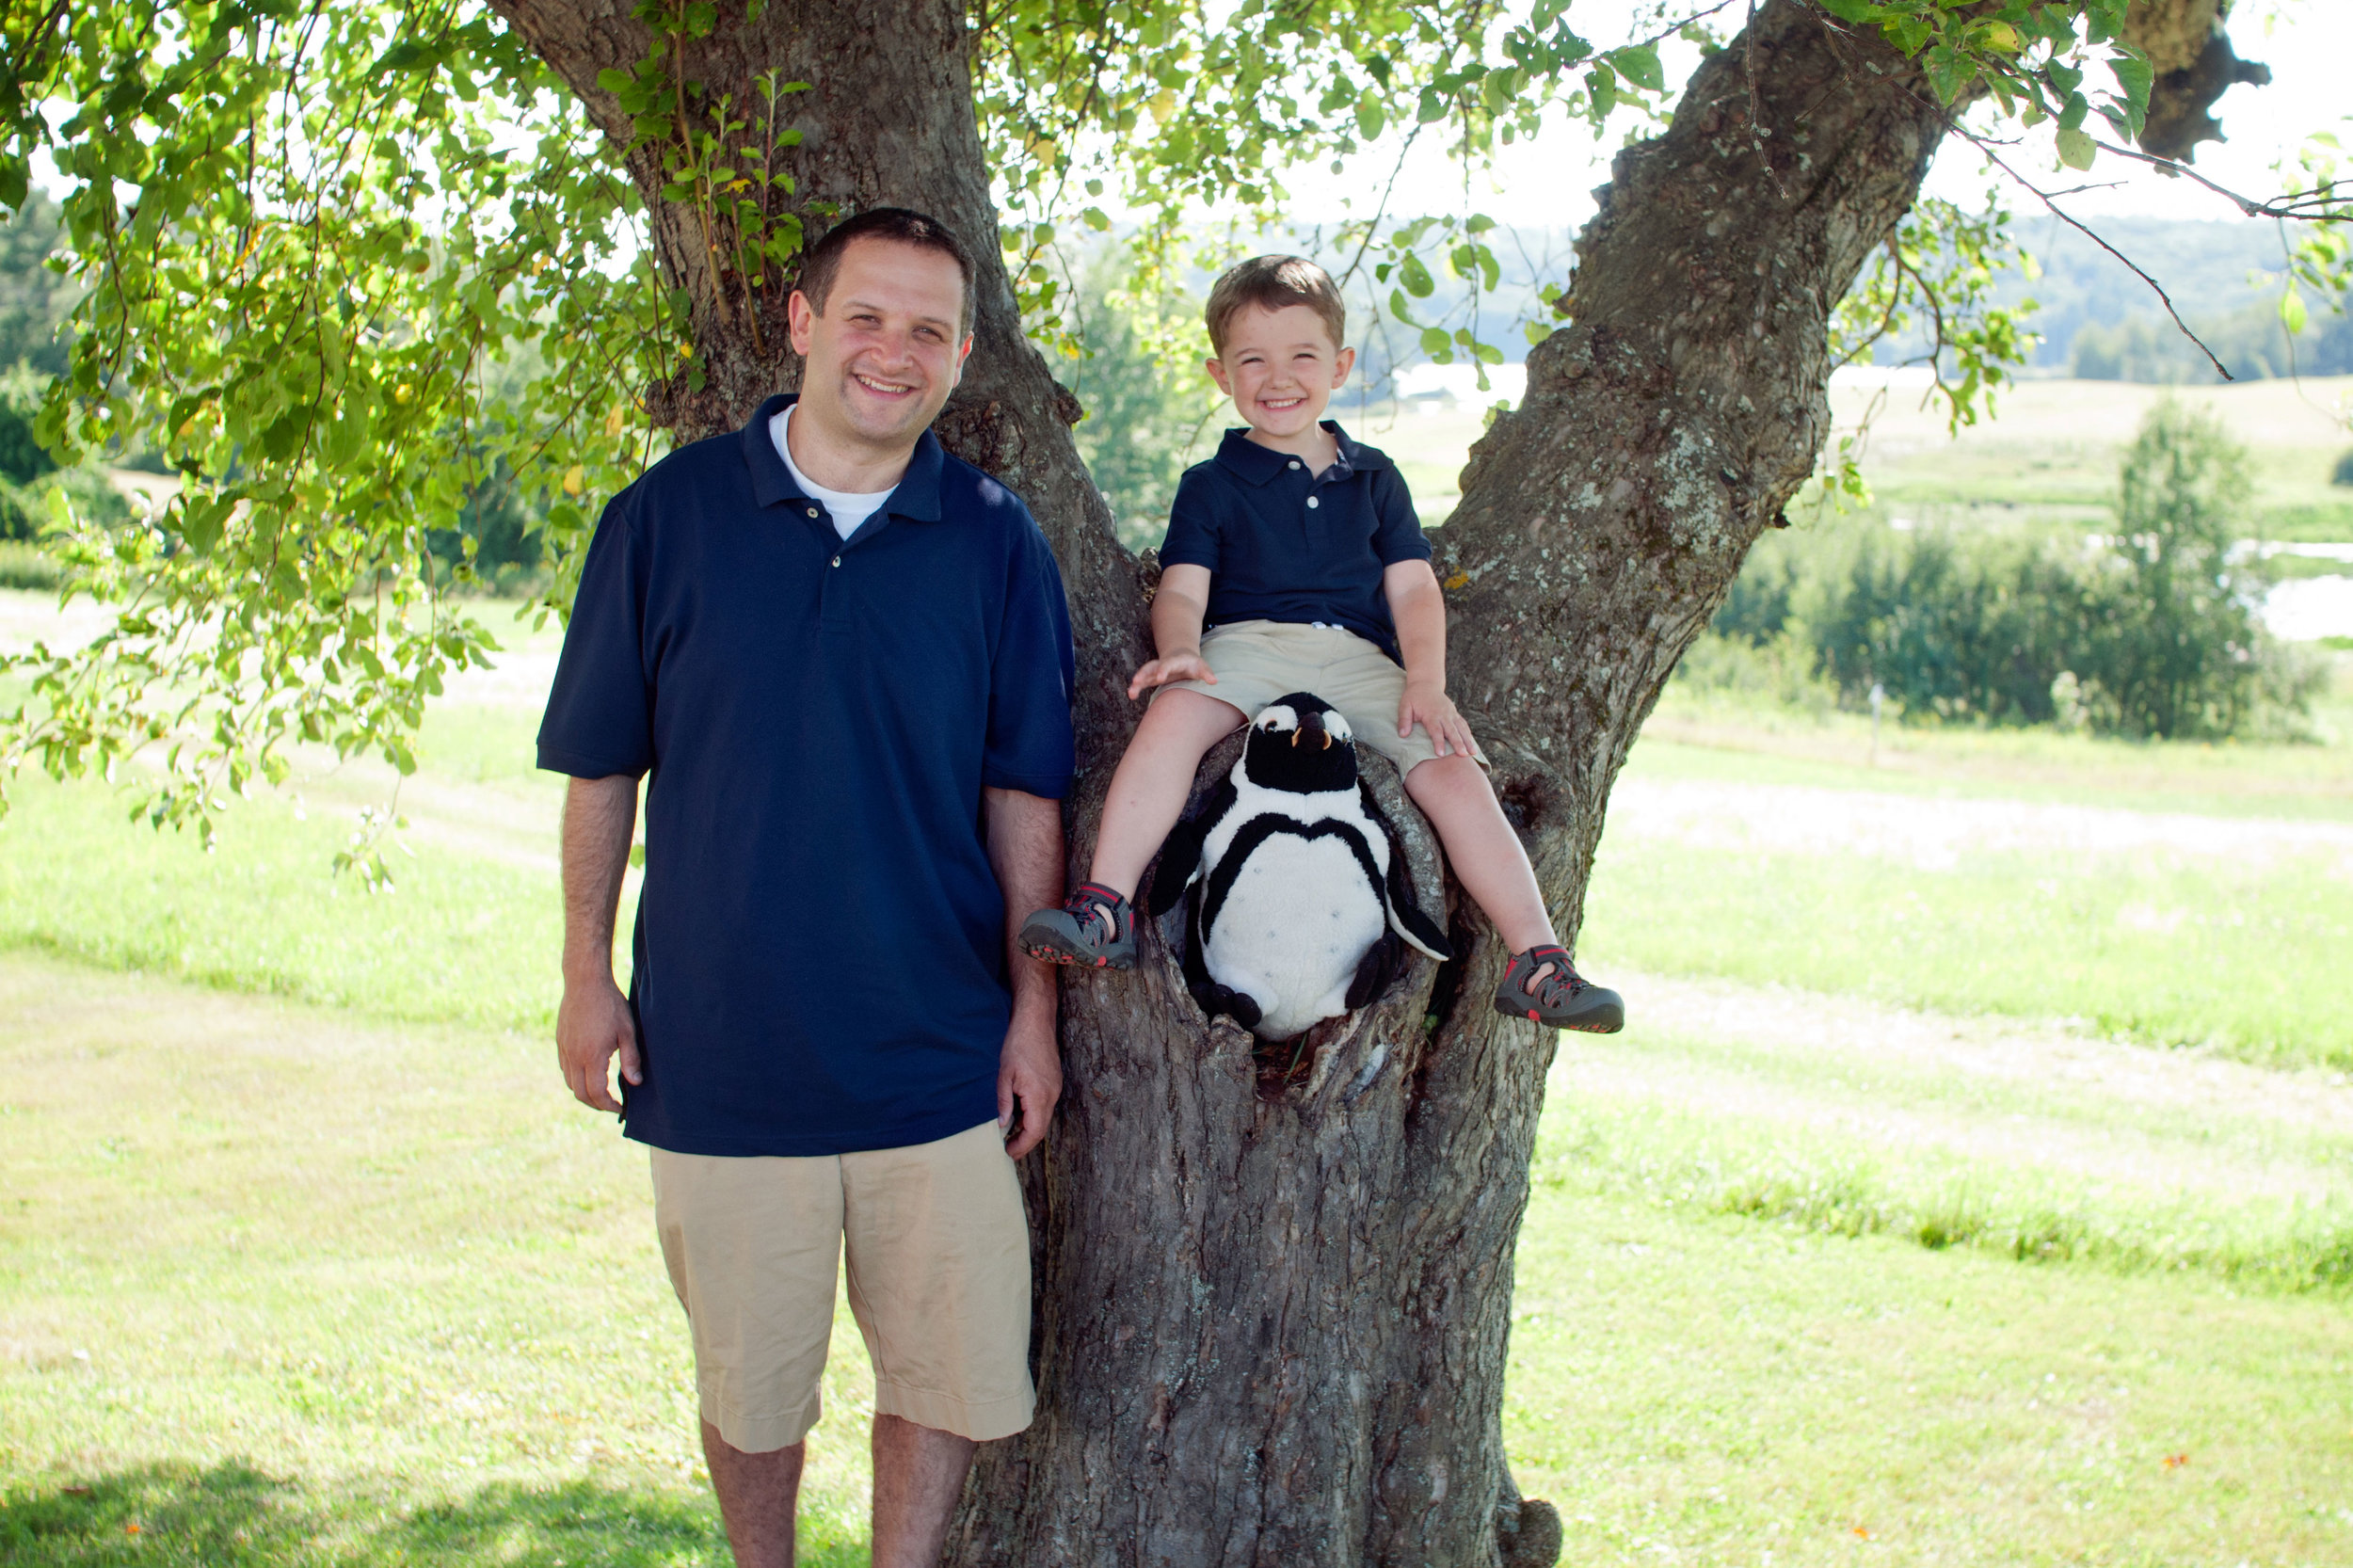 little boy sitting in the nook of a tree smiling with his uncle by his side